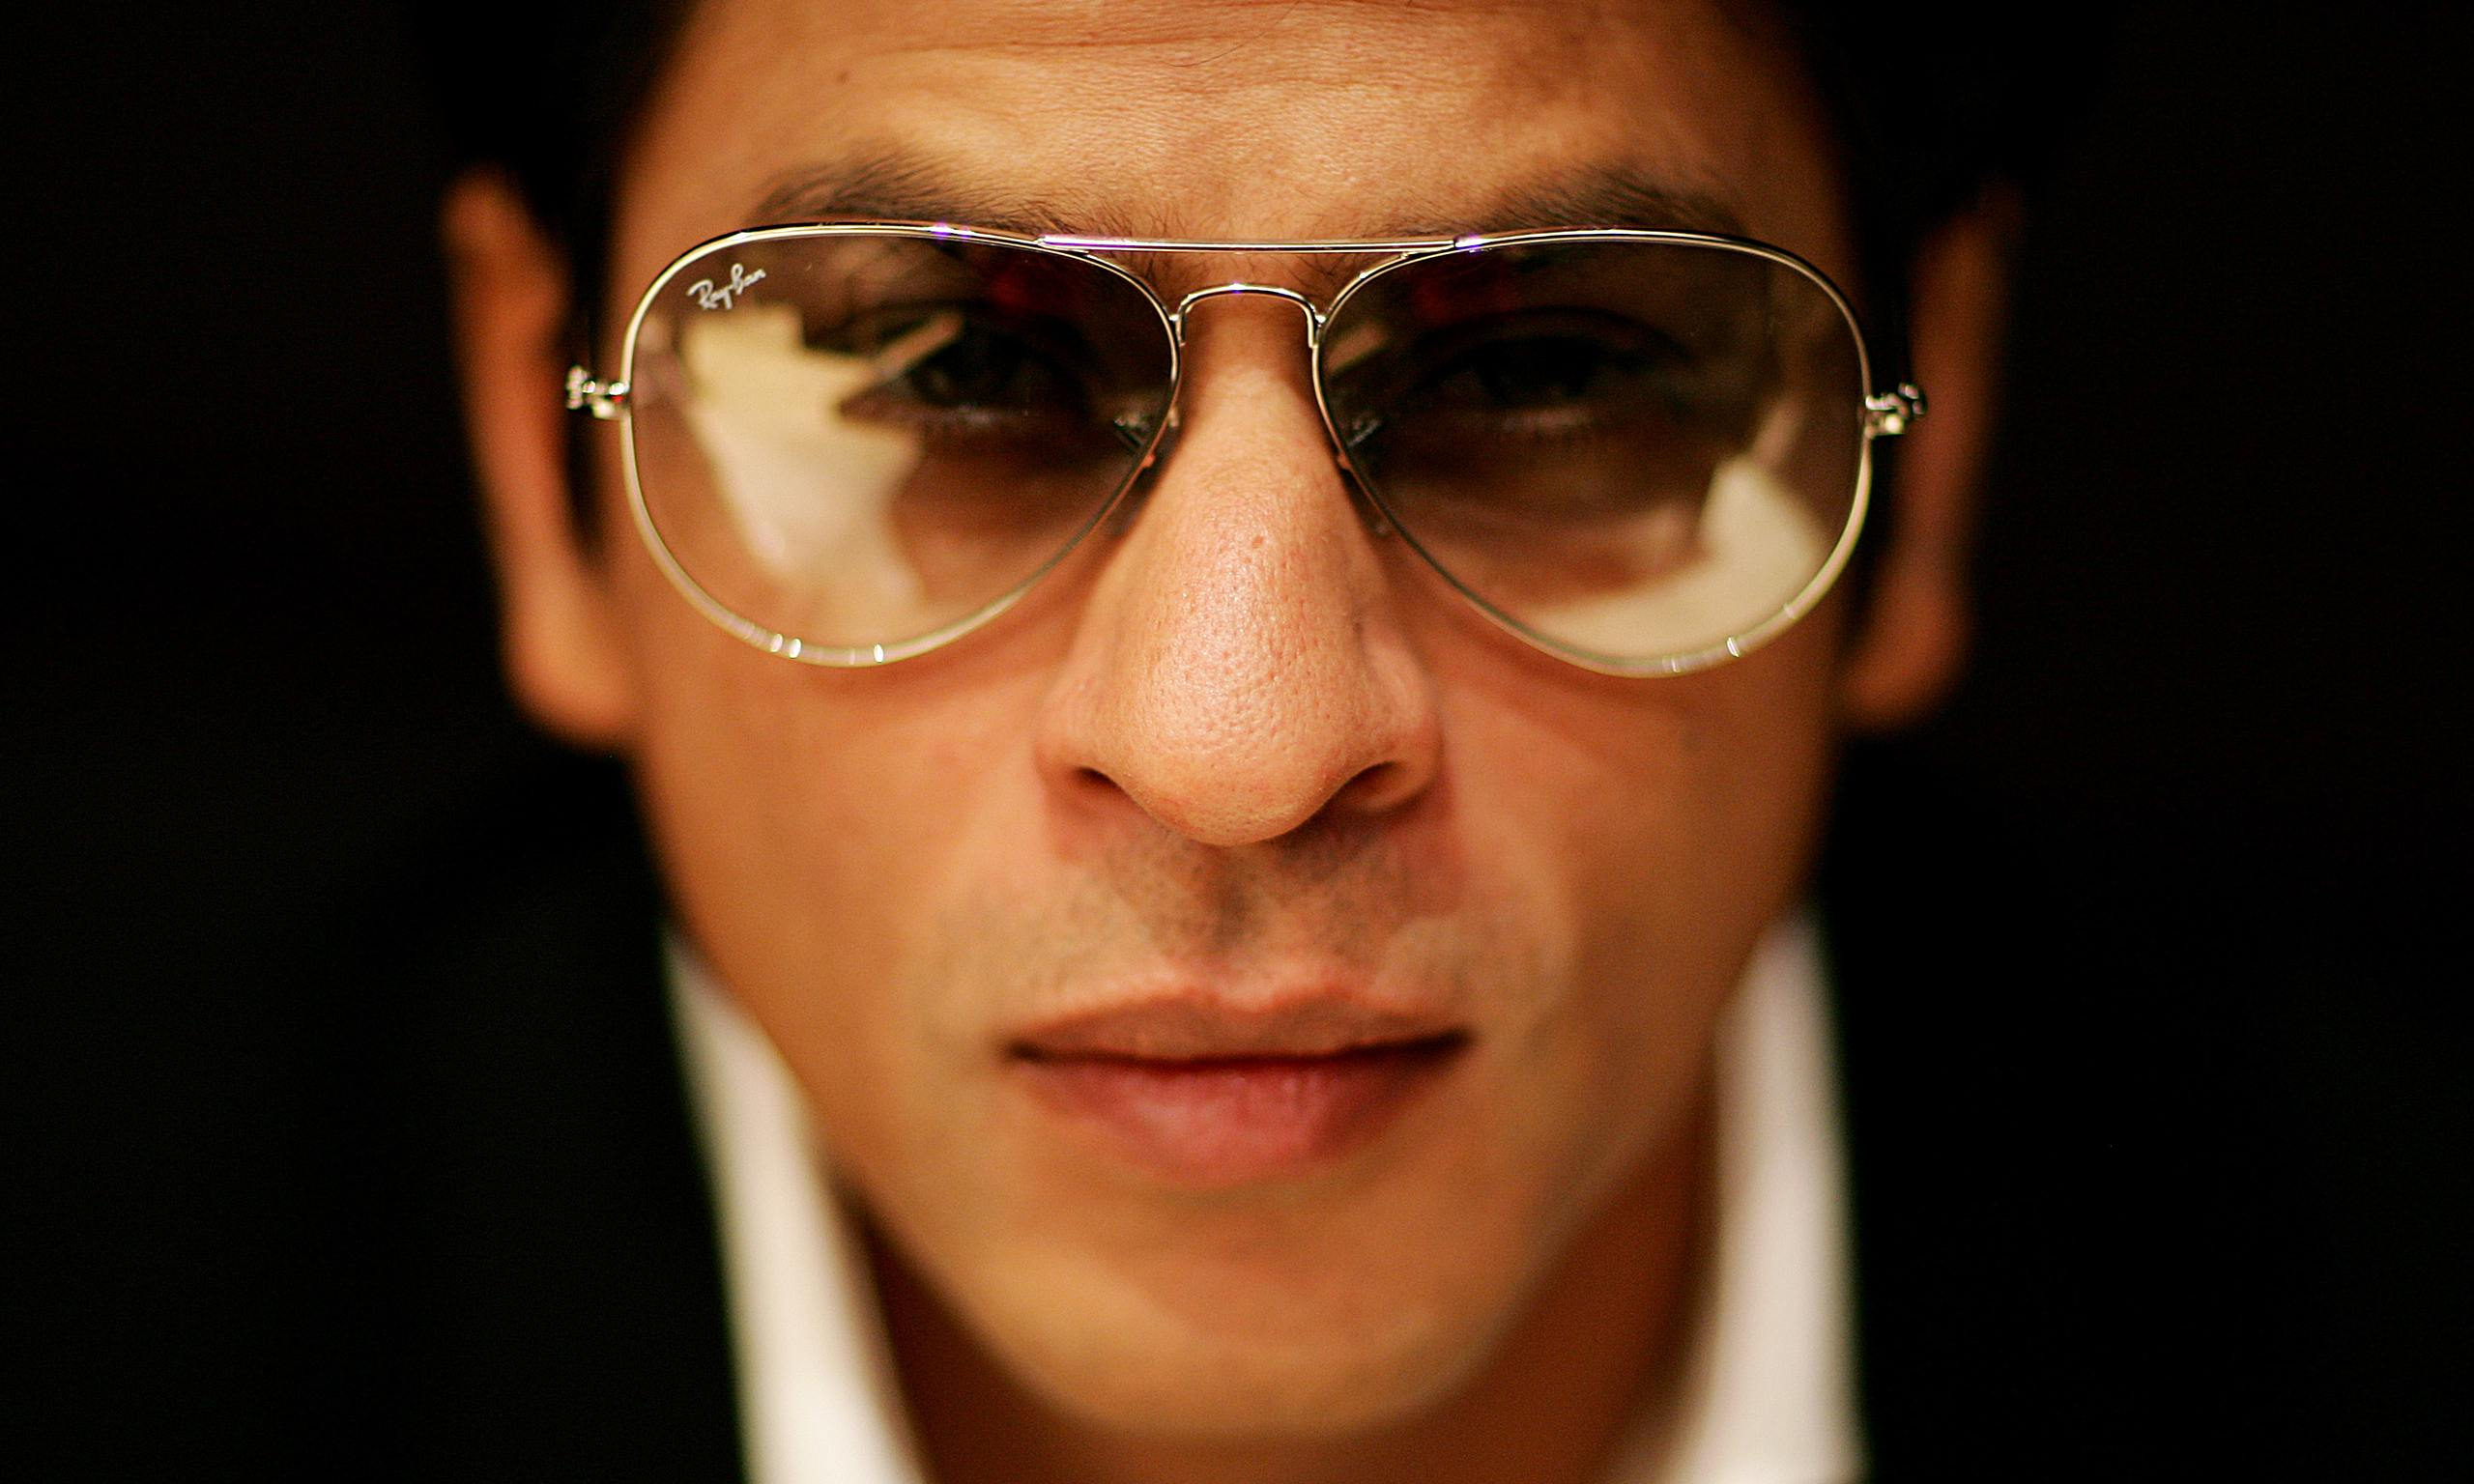 Shah Rukh Khan Wallpapers High Quality Download Free